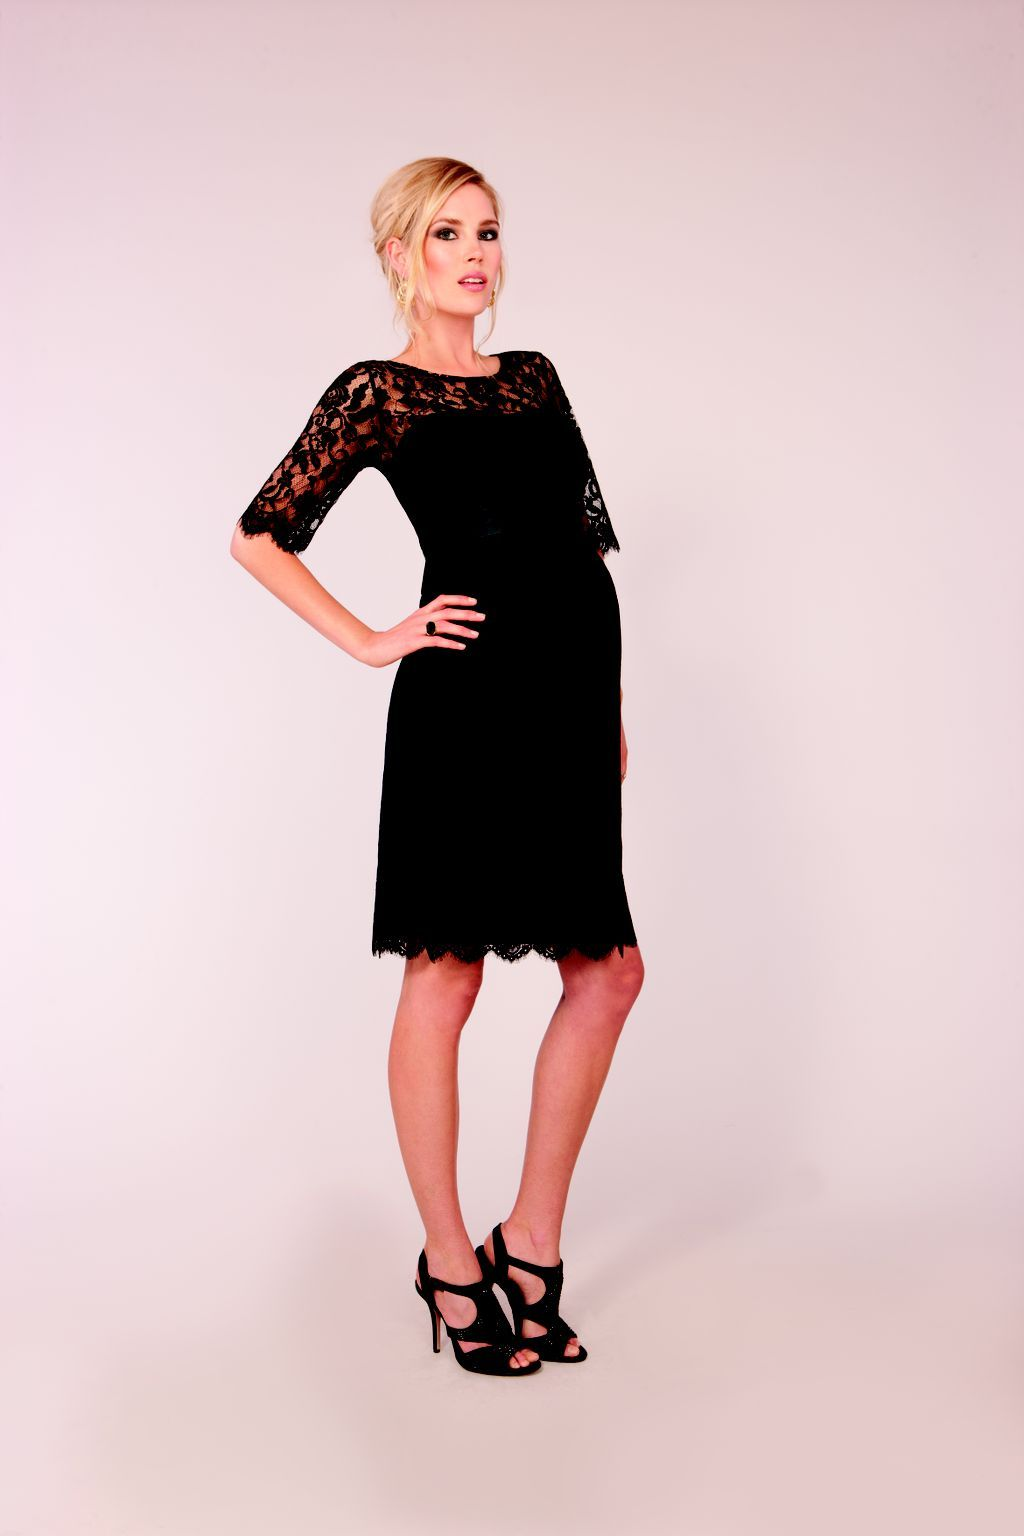 a887474ff5d14 For the Cocktail Party: Seraphine Luxe Black Lace Cocktail Dress ...